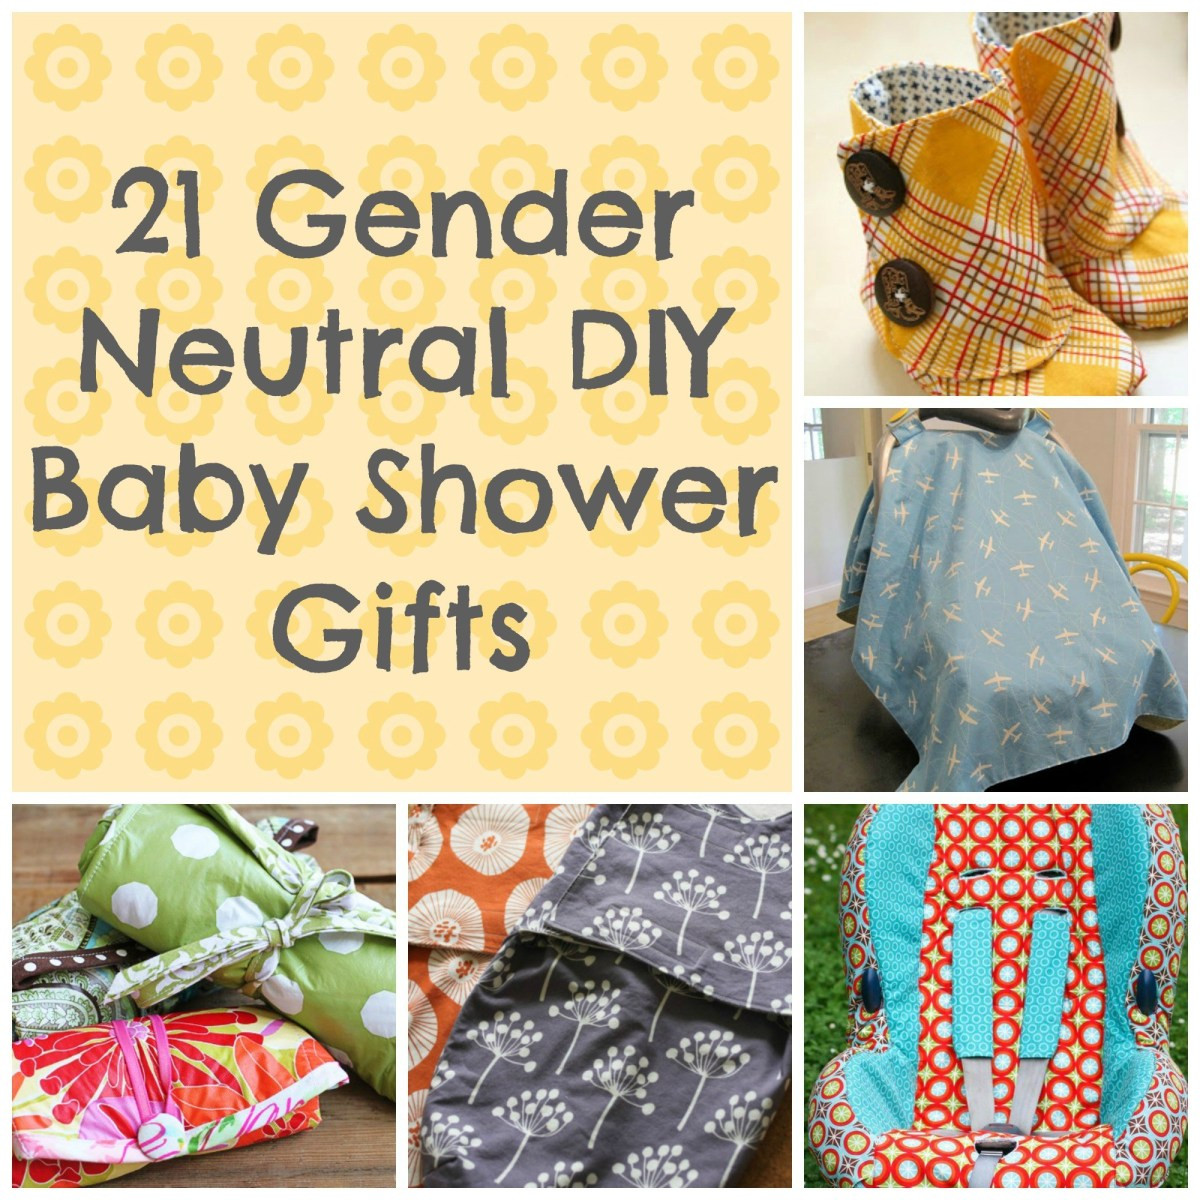 Best ideas about Unisex Baby Gift Ideas . Save or Pin 21 Awesome DIY Baby Shower Gift Ideas That Are Gender Neutral Now.